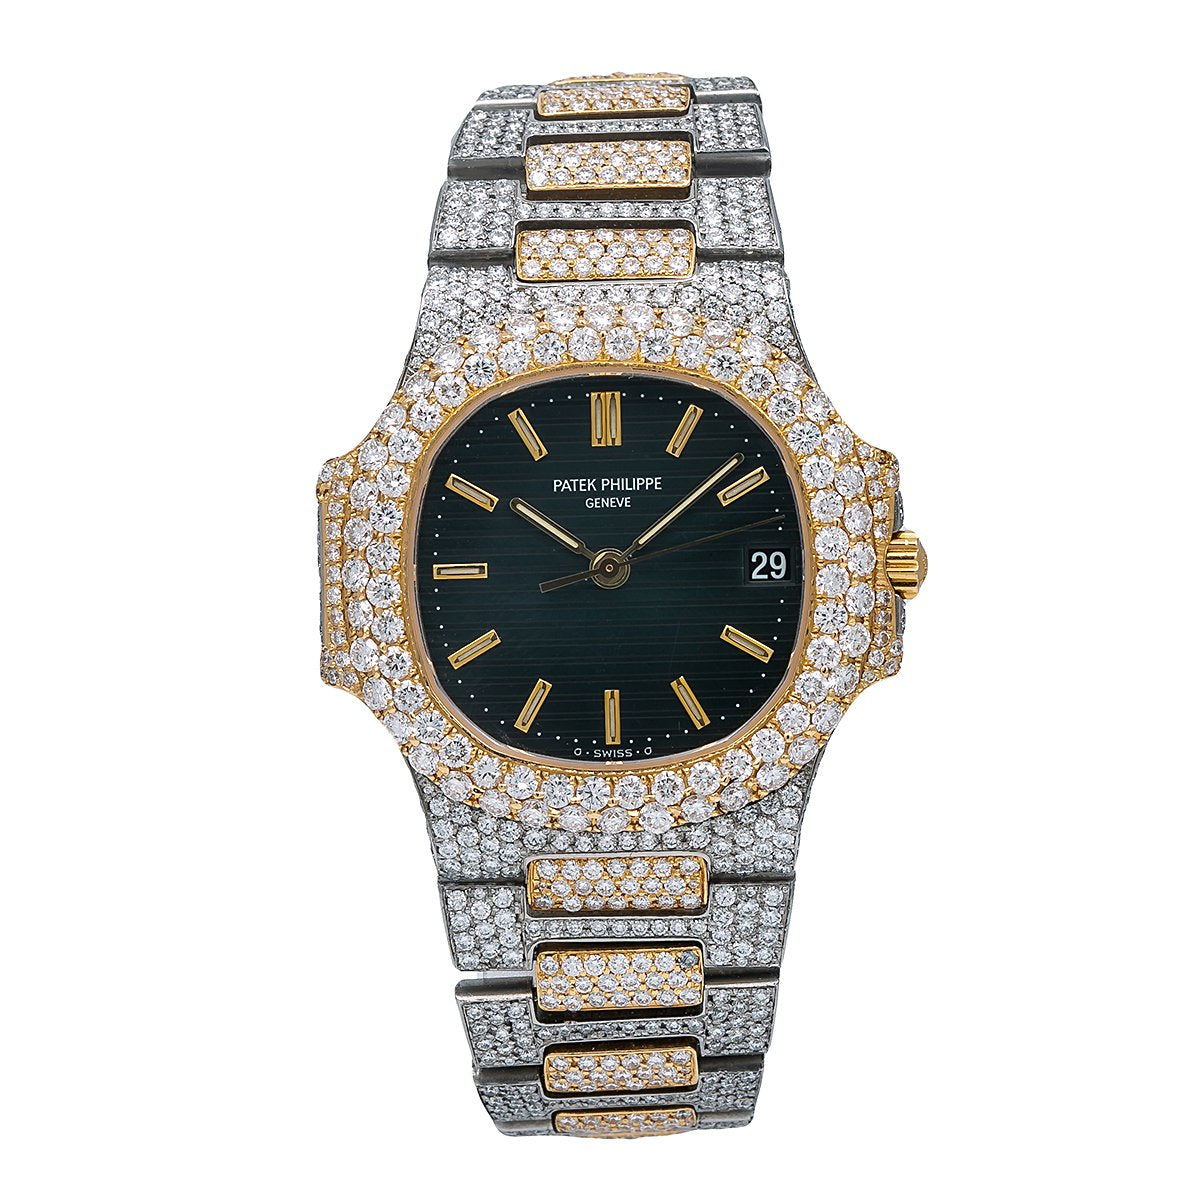 Patek Philippe Nautilus 3800 37MM Black Dial With 12.25 CT Diamonds